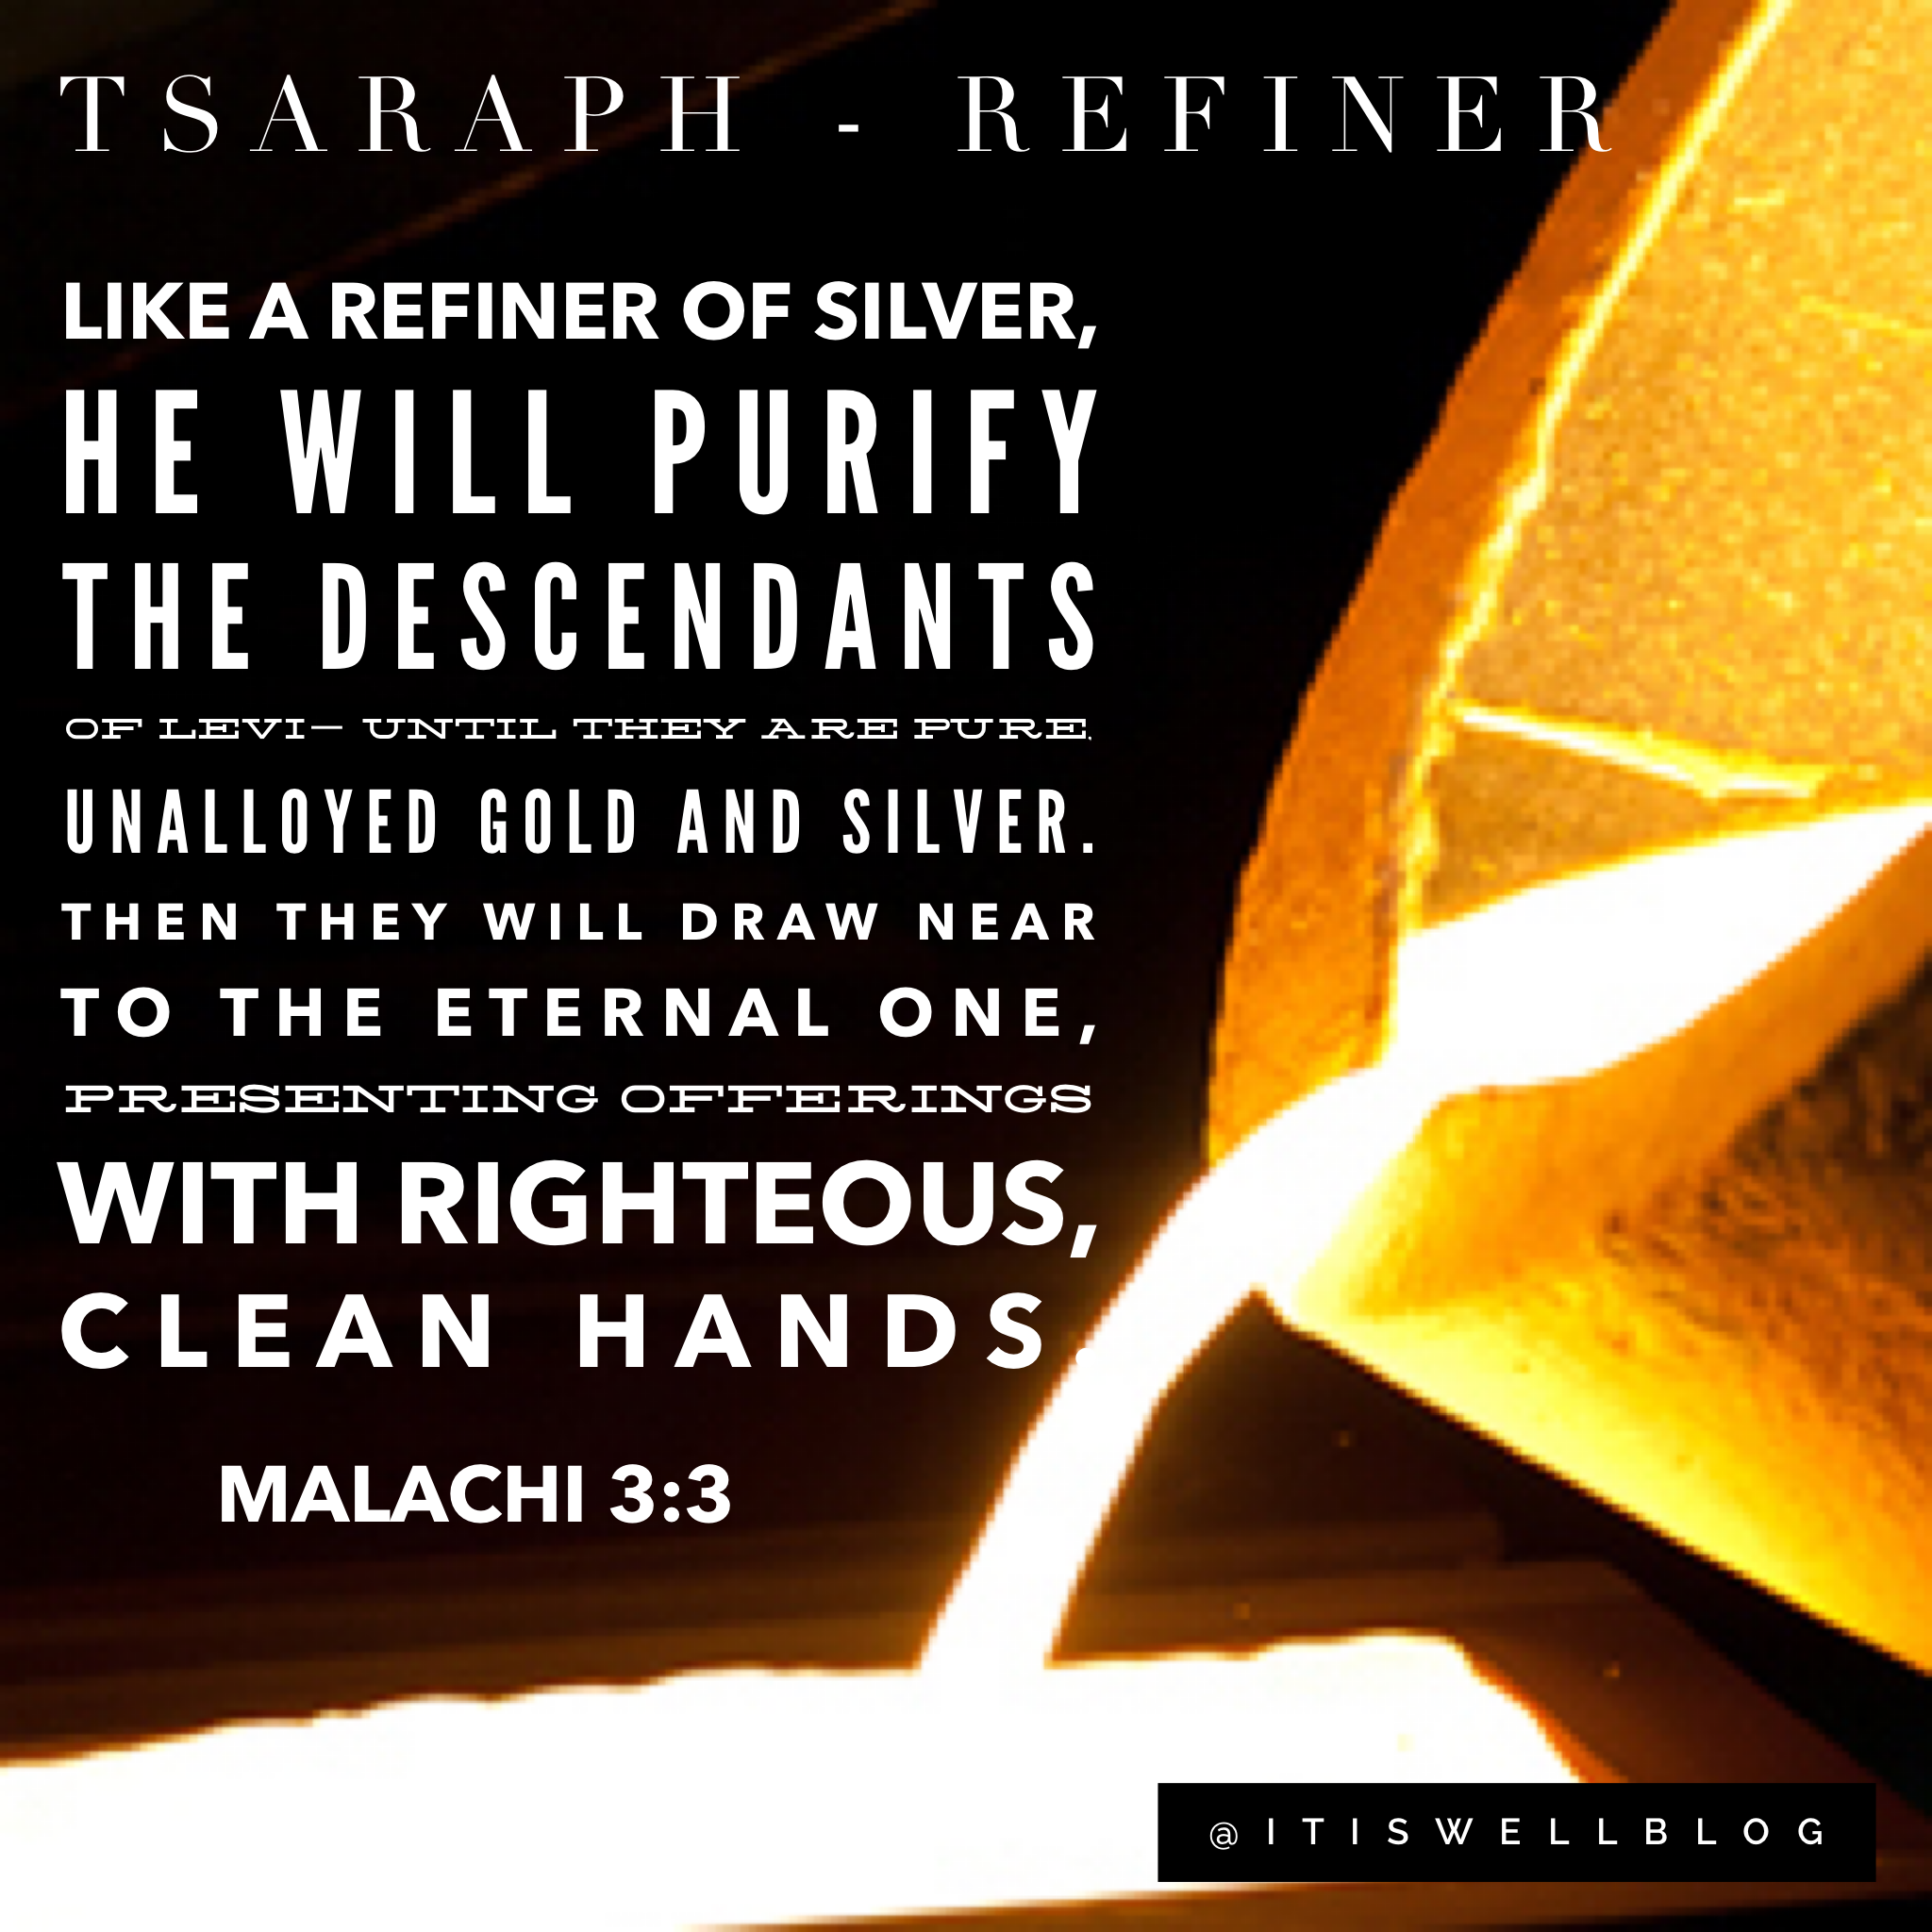 Tsaraph God the Refiner.   Like a refiner of silver,     He will purify the descendants of Levi— Until they are pure, unalloyed gold and silver.     Then they will draw near to the Eternal One, Presenting offerings with righteous, clean hands. Malachi 3:3